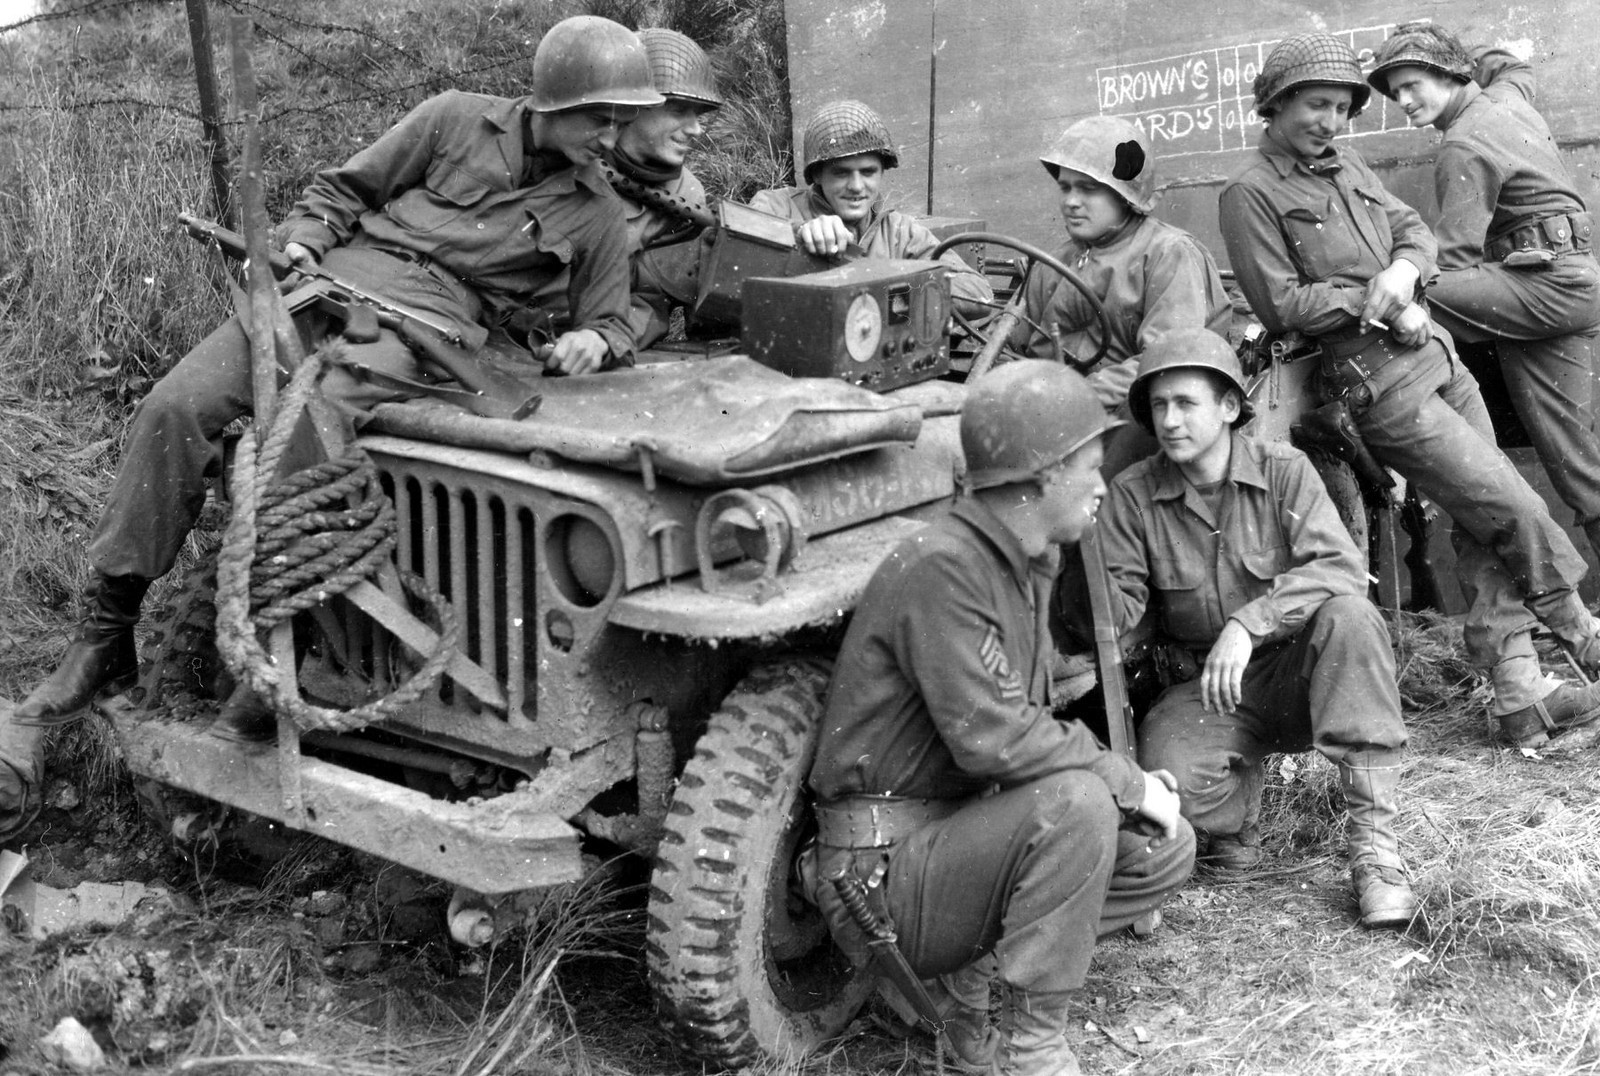 1000+ images about Jeep at War on Pinterest